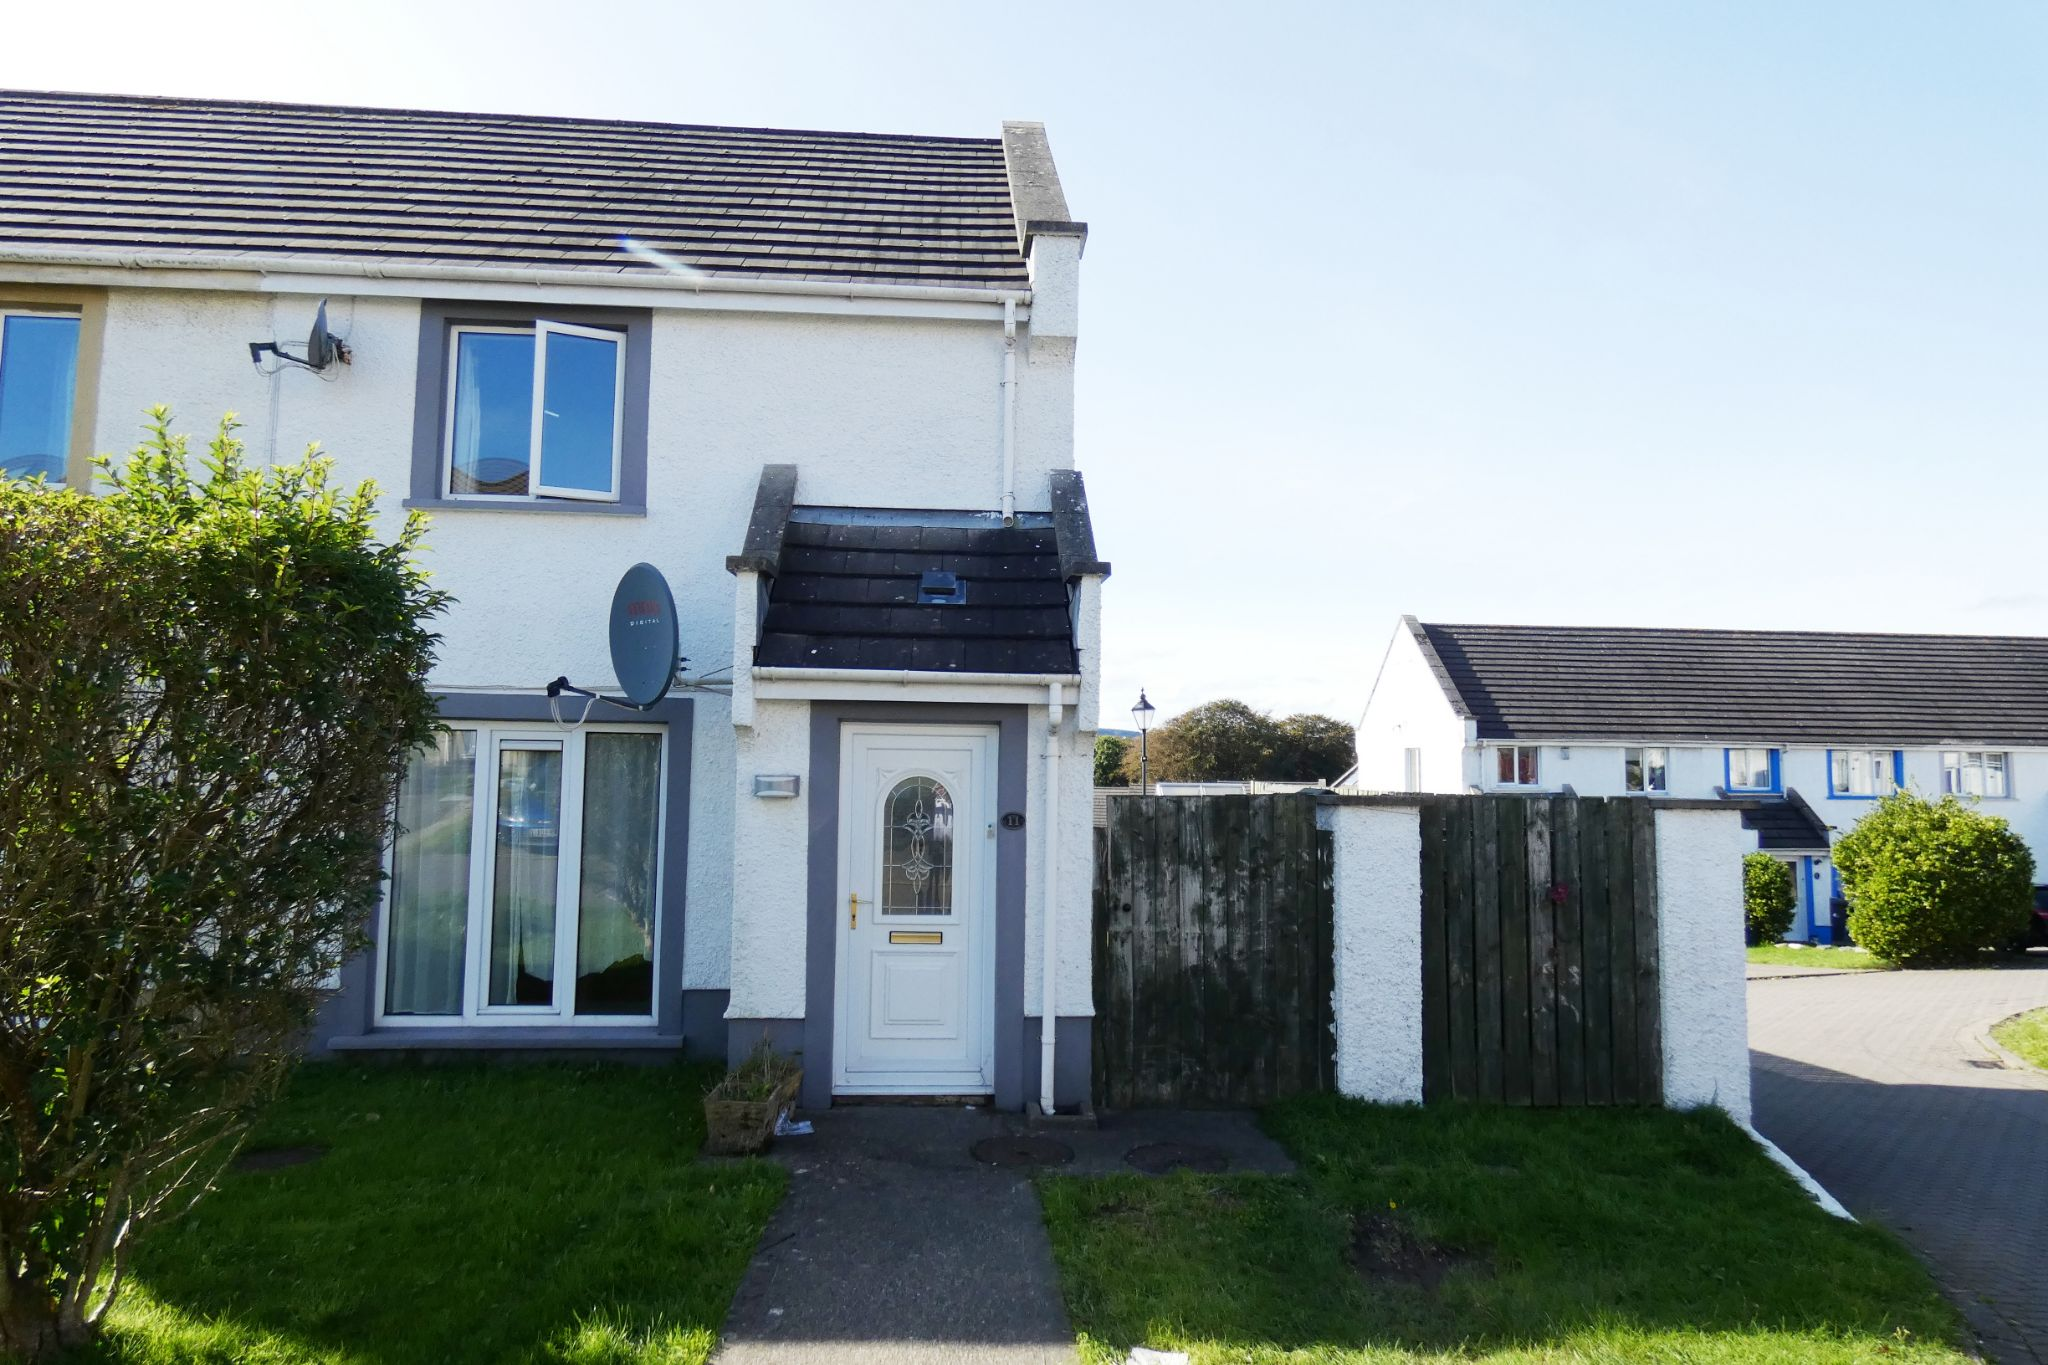 2 bedroom semi-detached house Sold in Douglas - Photograph 1